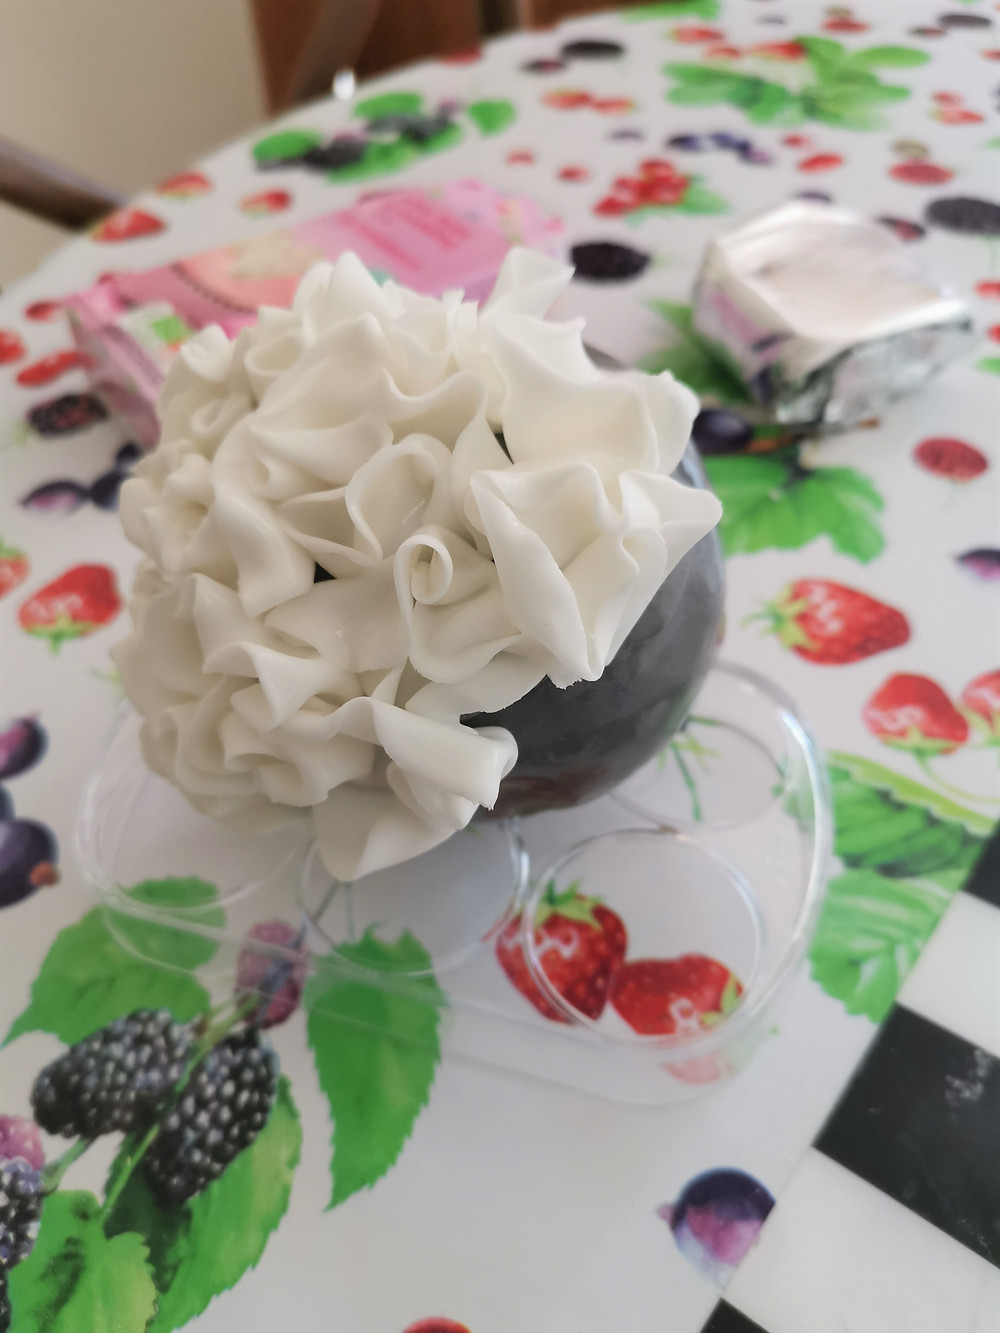 A gluten-free flower ball in the making